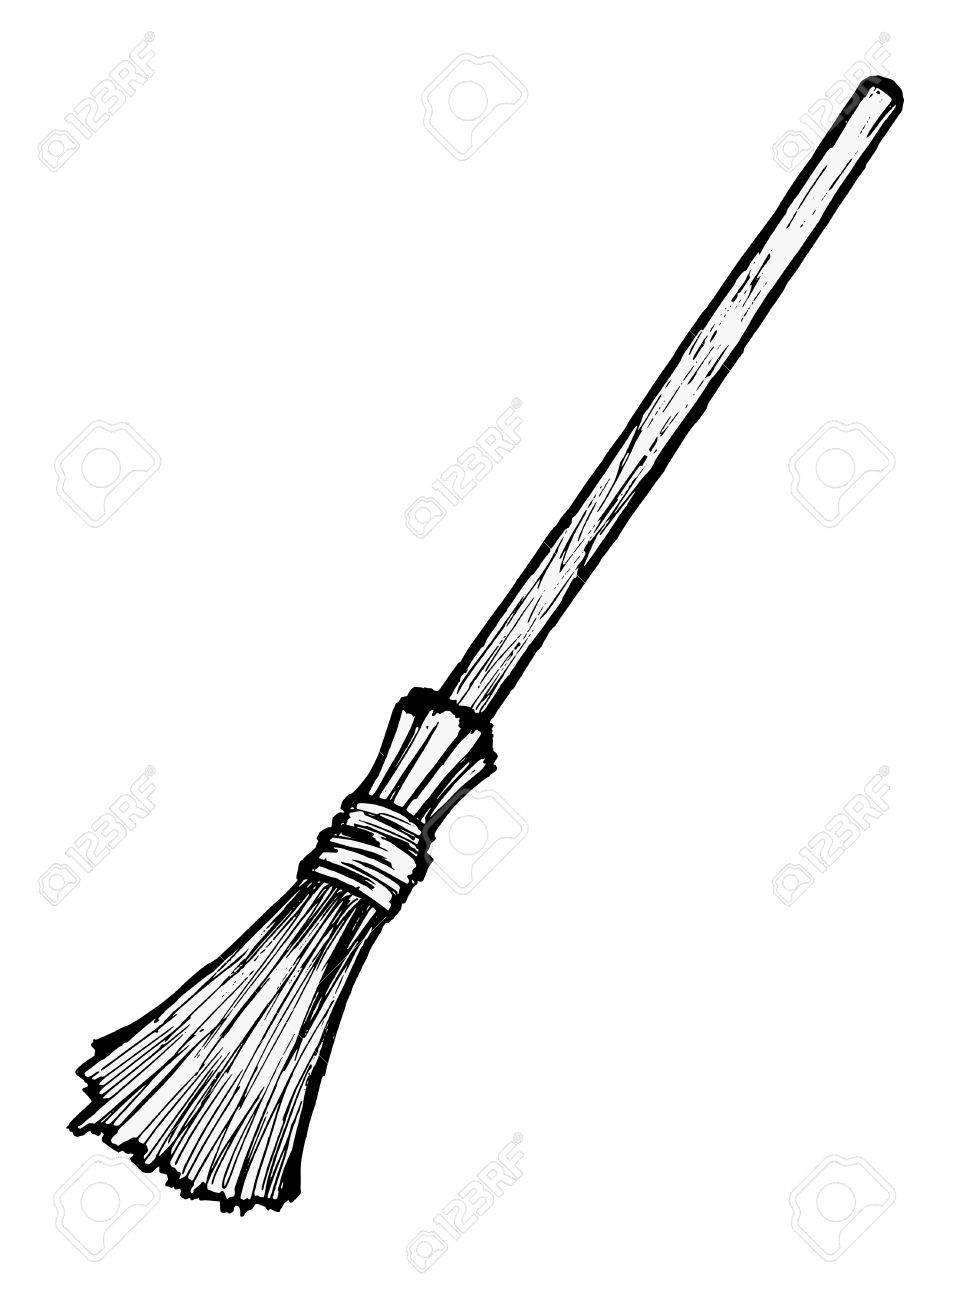 Black and white broom clipart clip art free download Clipart black and white broom 2 » Clipart Portal clip art free download